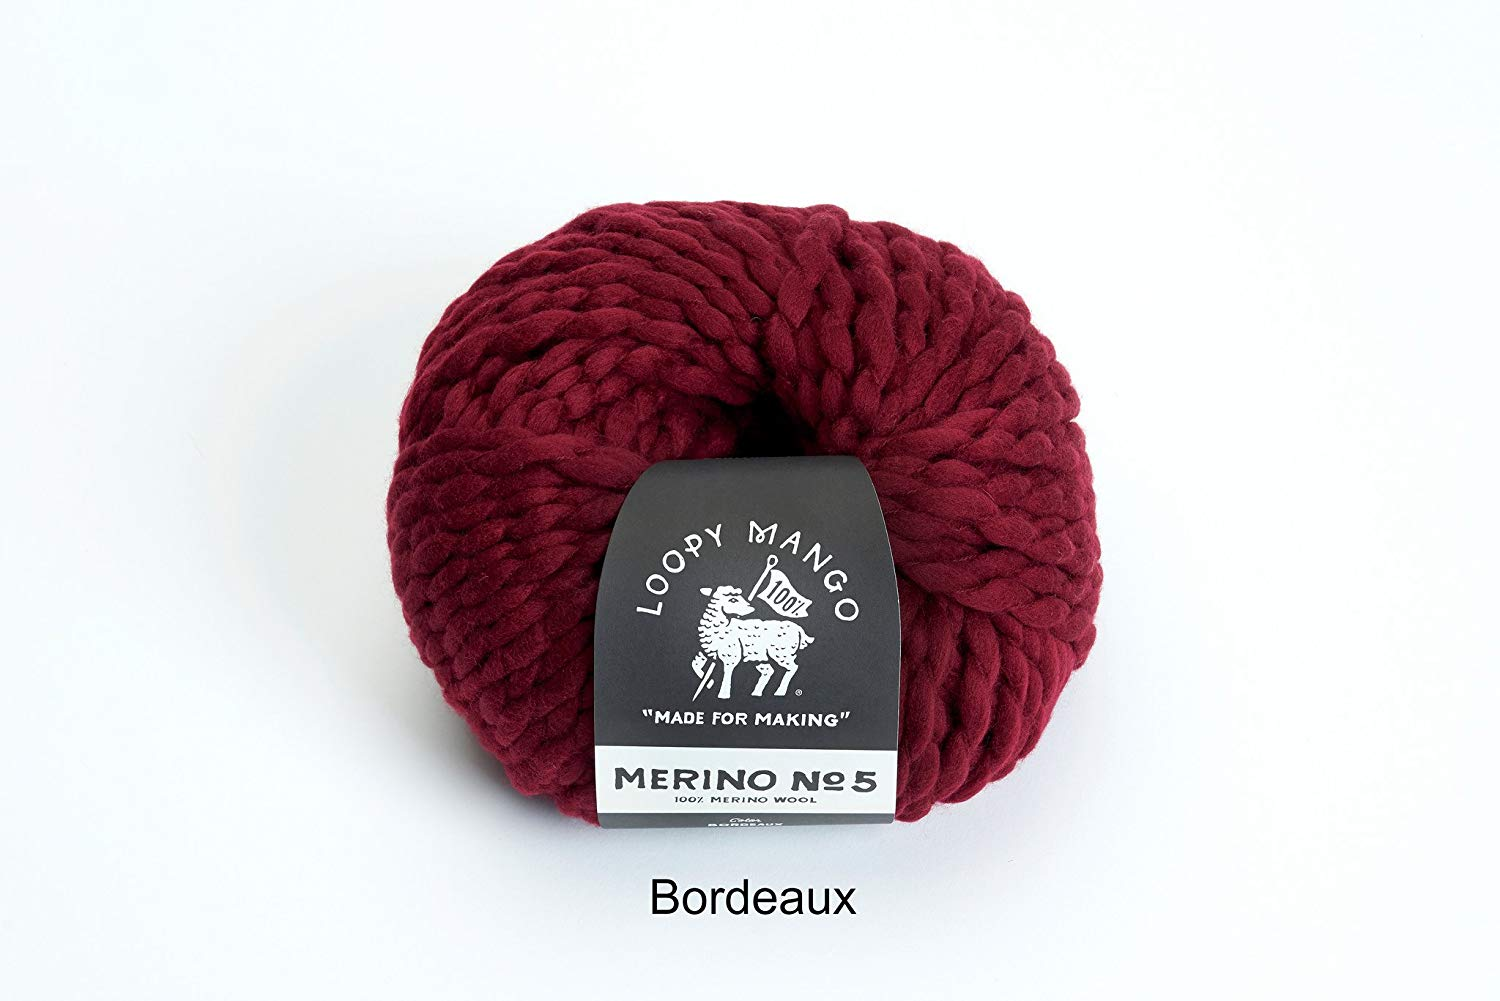 8c8d3a71348 Loopy Mango DIY Kit - Mini Pom Pom Beanie 5-8 years old (Bordeaux)